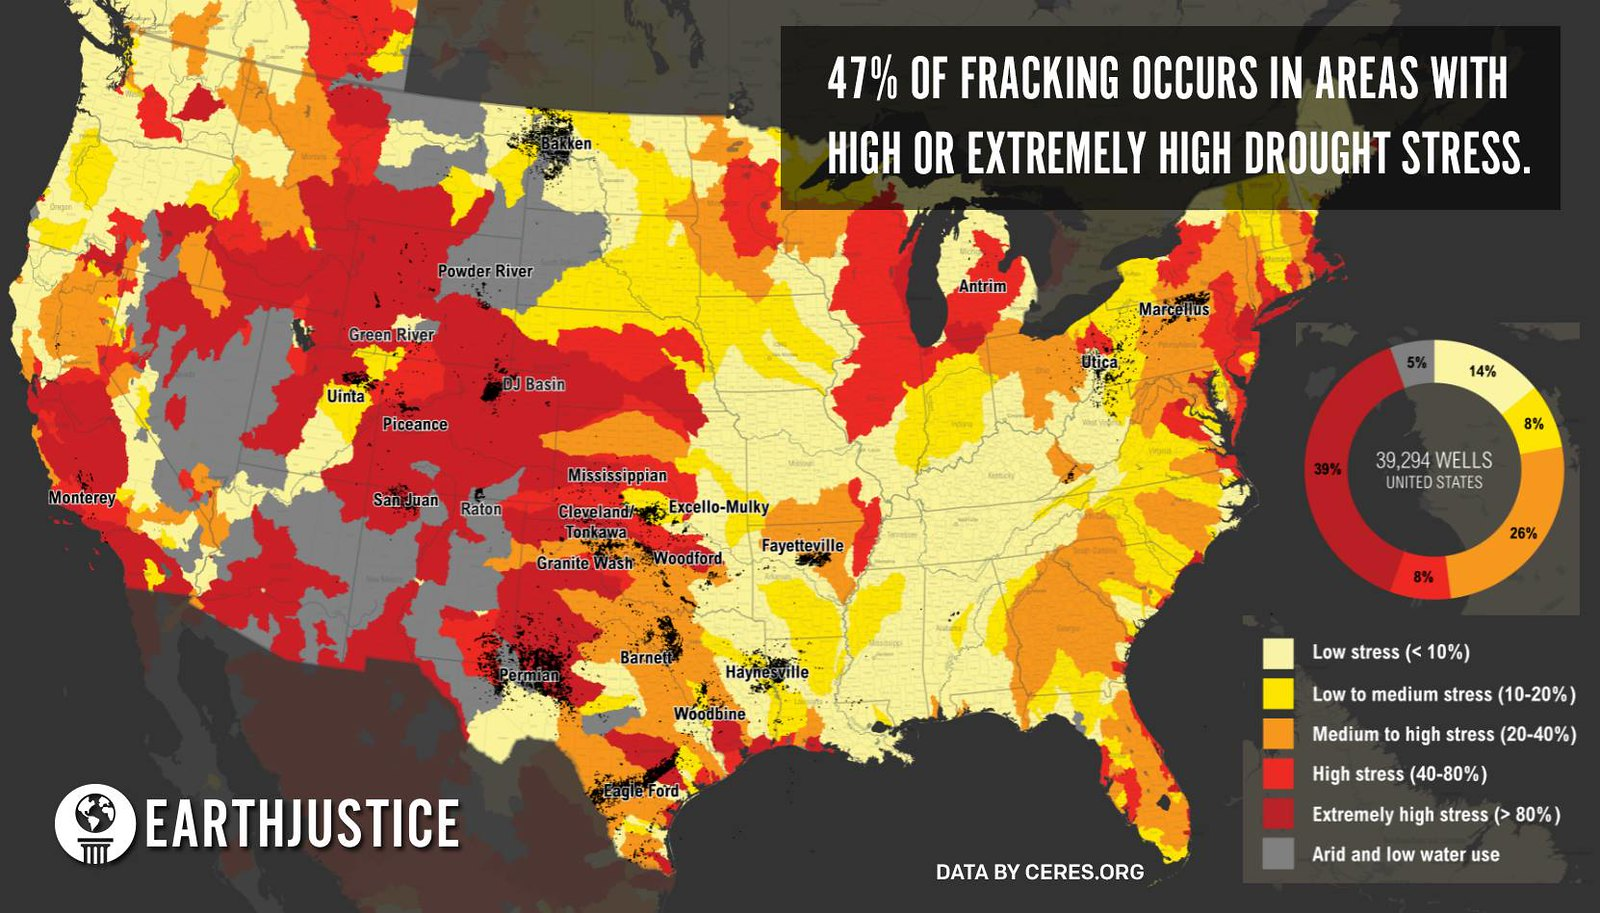 Map Of Fracking Occurs In Areas With High Or Extremely High - Us fracking map